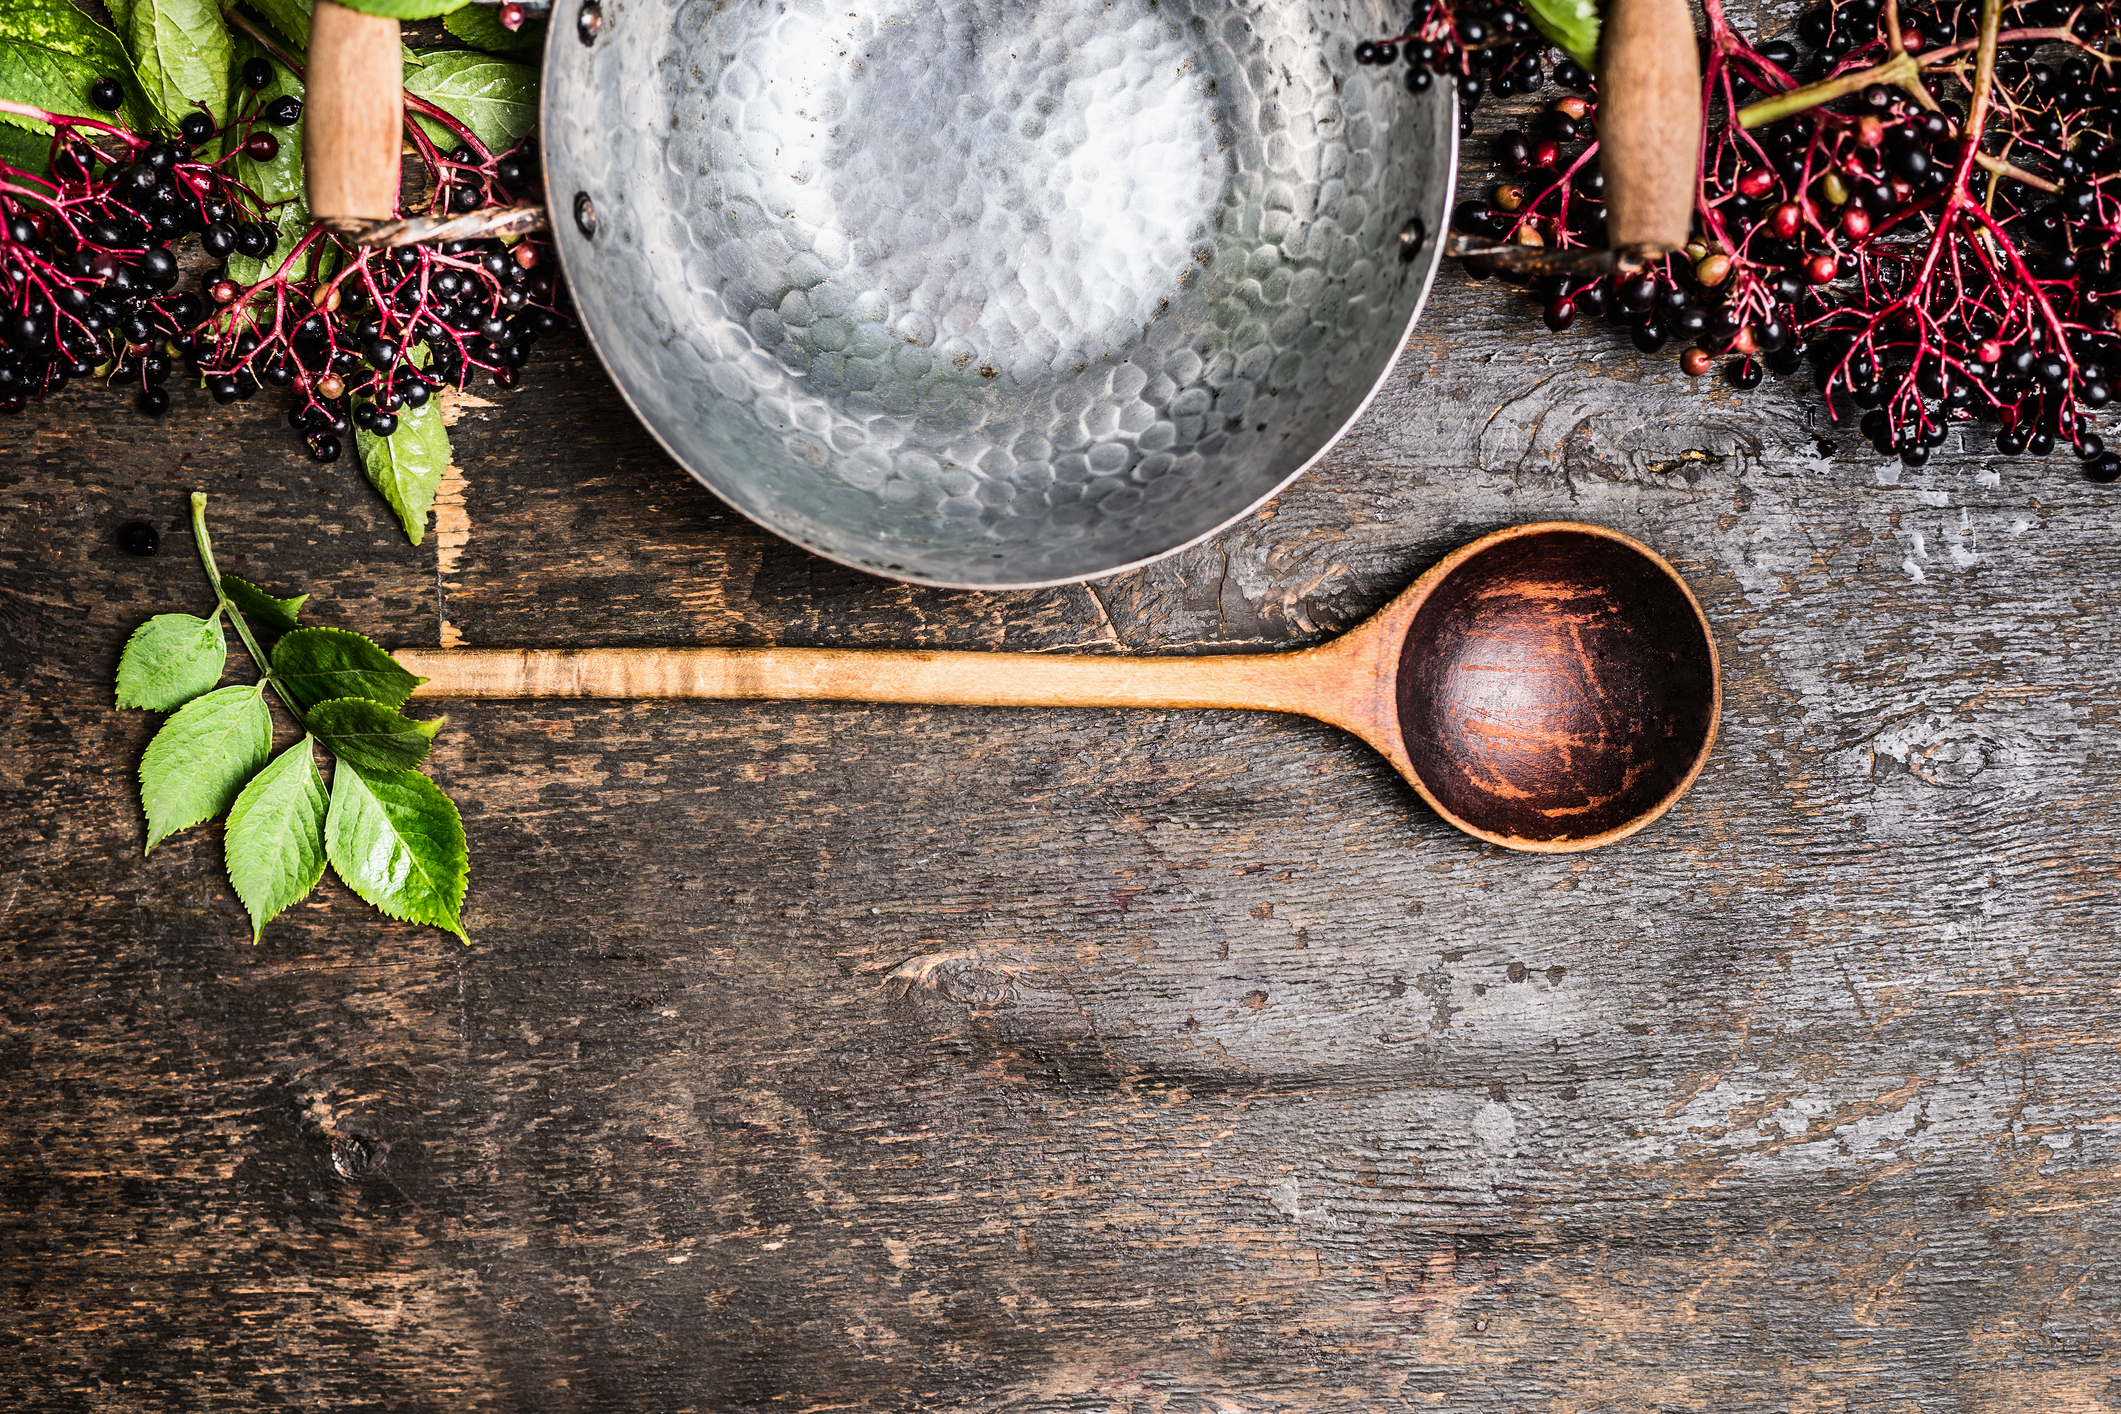 How to Make Elderberry Syrup From Dried Berries